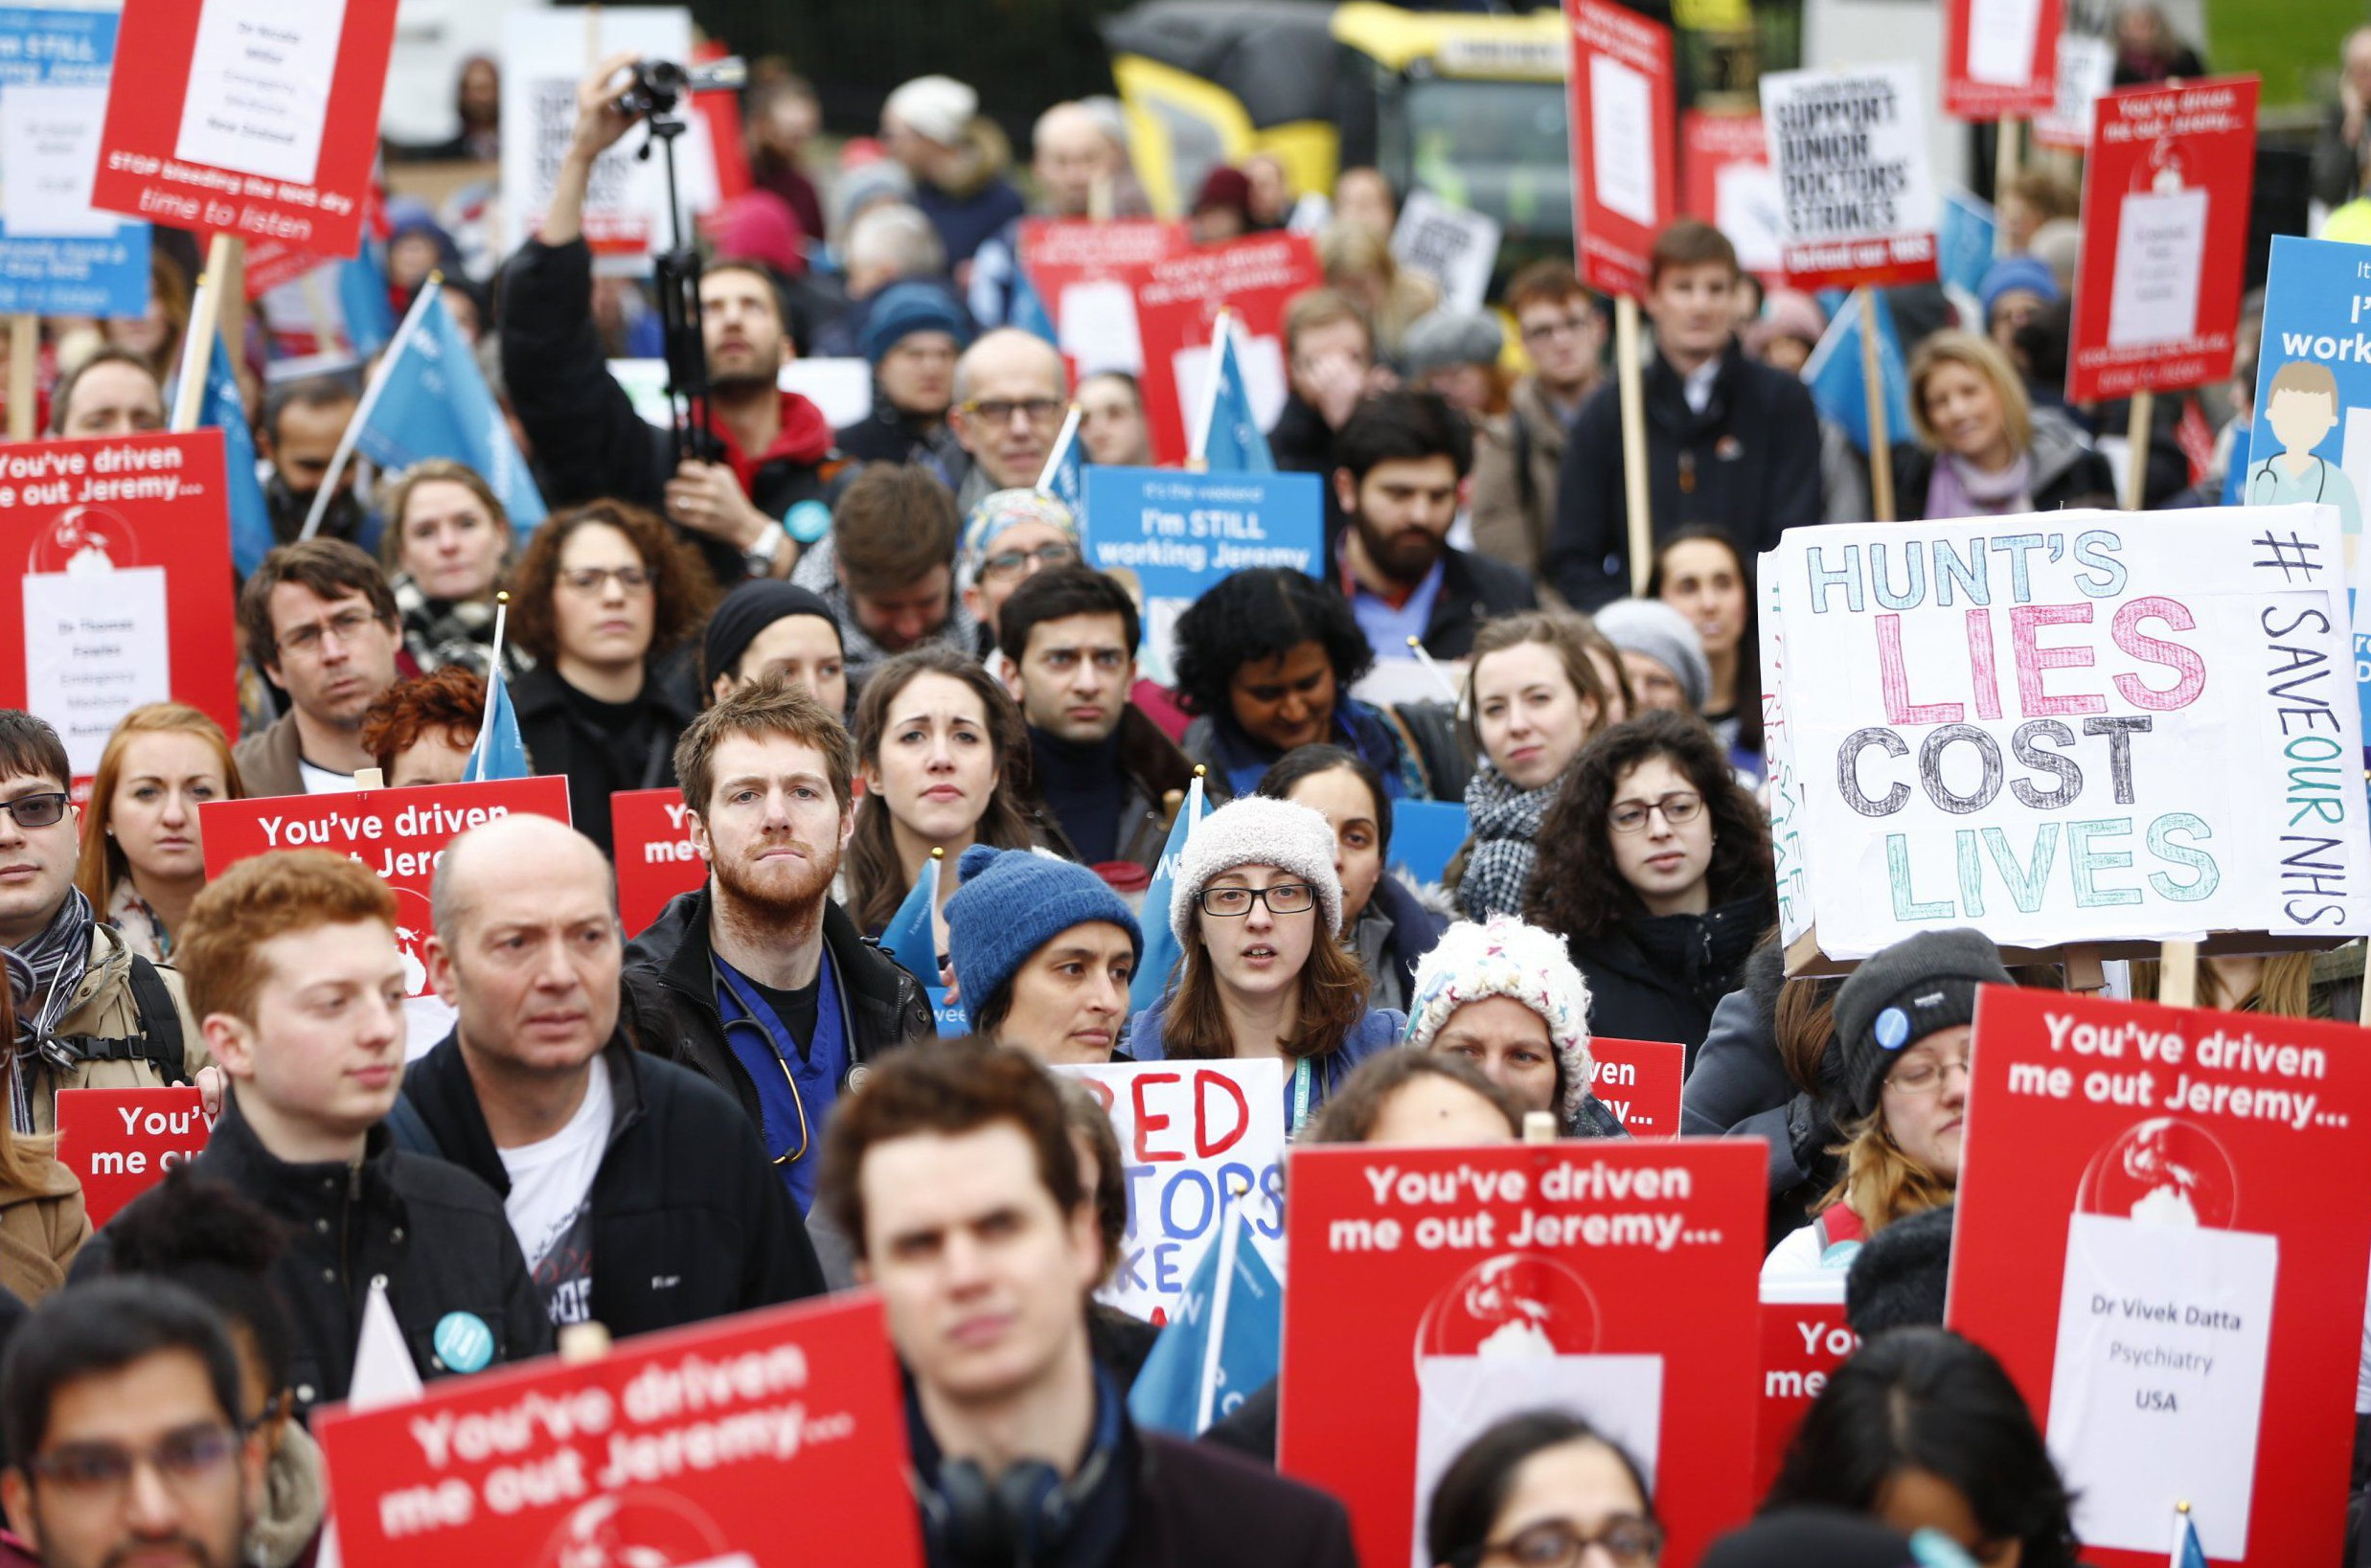 Mandatory Credit: Photo by Tolga Akmen/LNP/REX/Shutterstock (5583166j) Junior doctors and NHS staff staging a protest in central London ahead of a 24-hour walkout due to begin on Wednesday Junior Doctors Protest, London, Britain - 06 Feb 2016